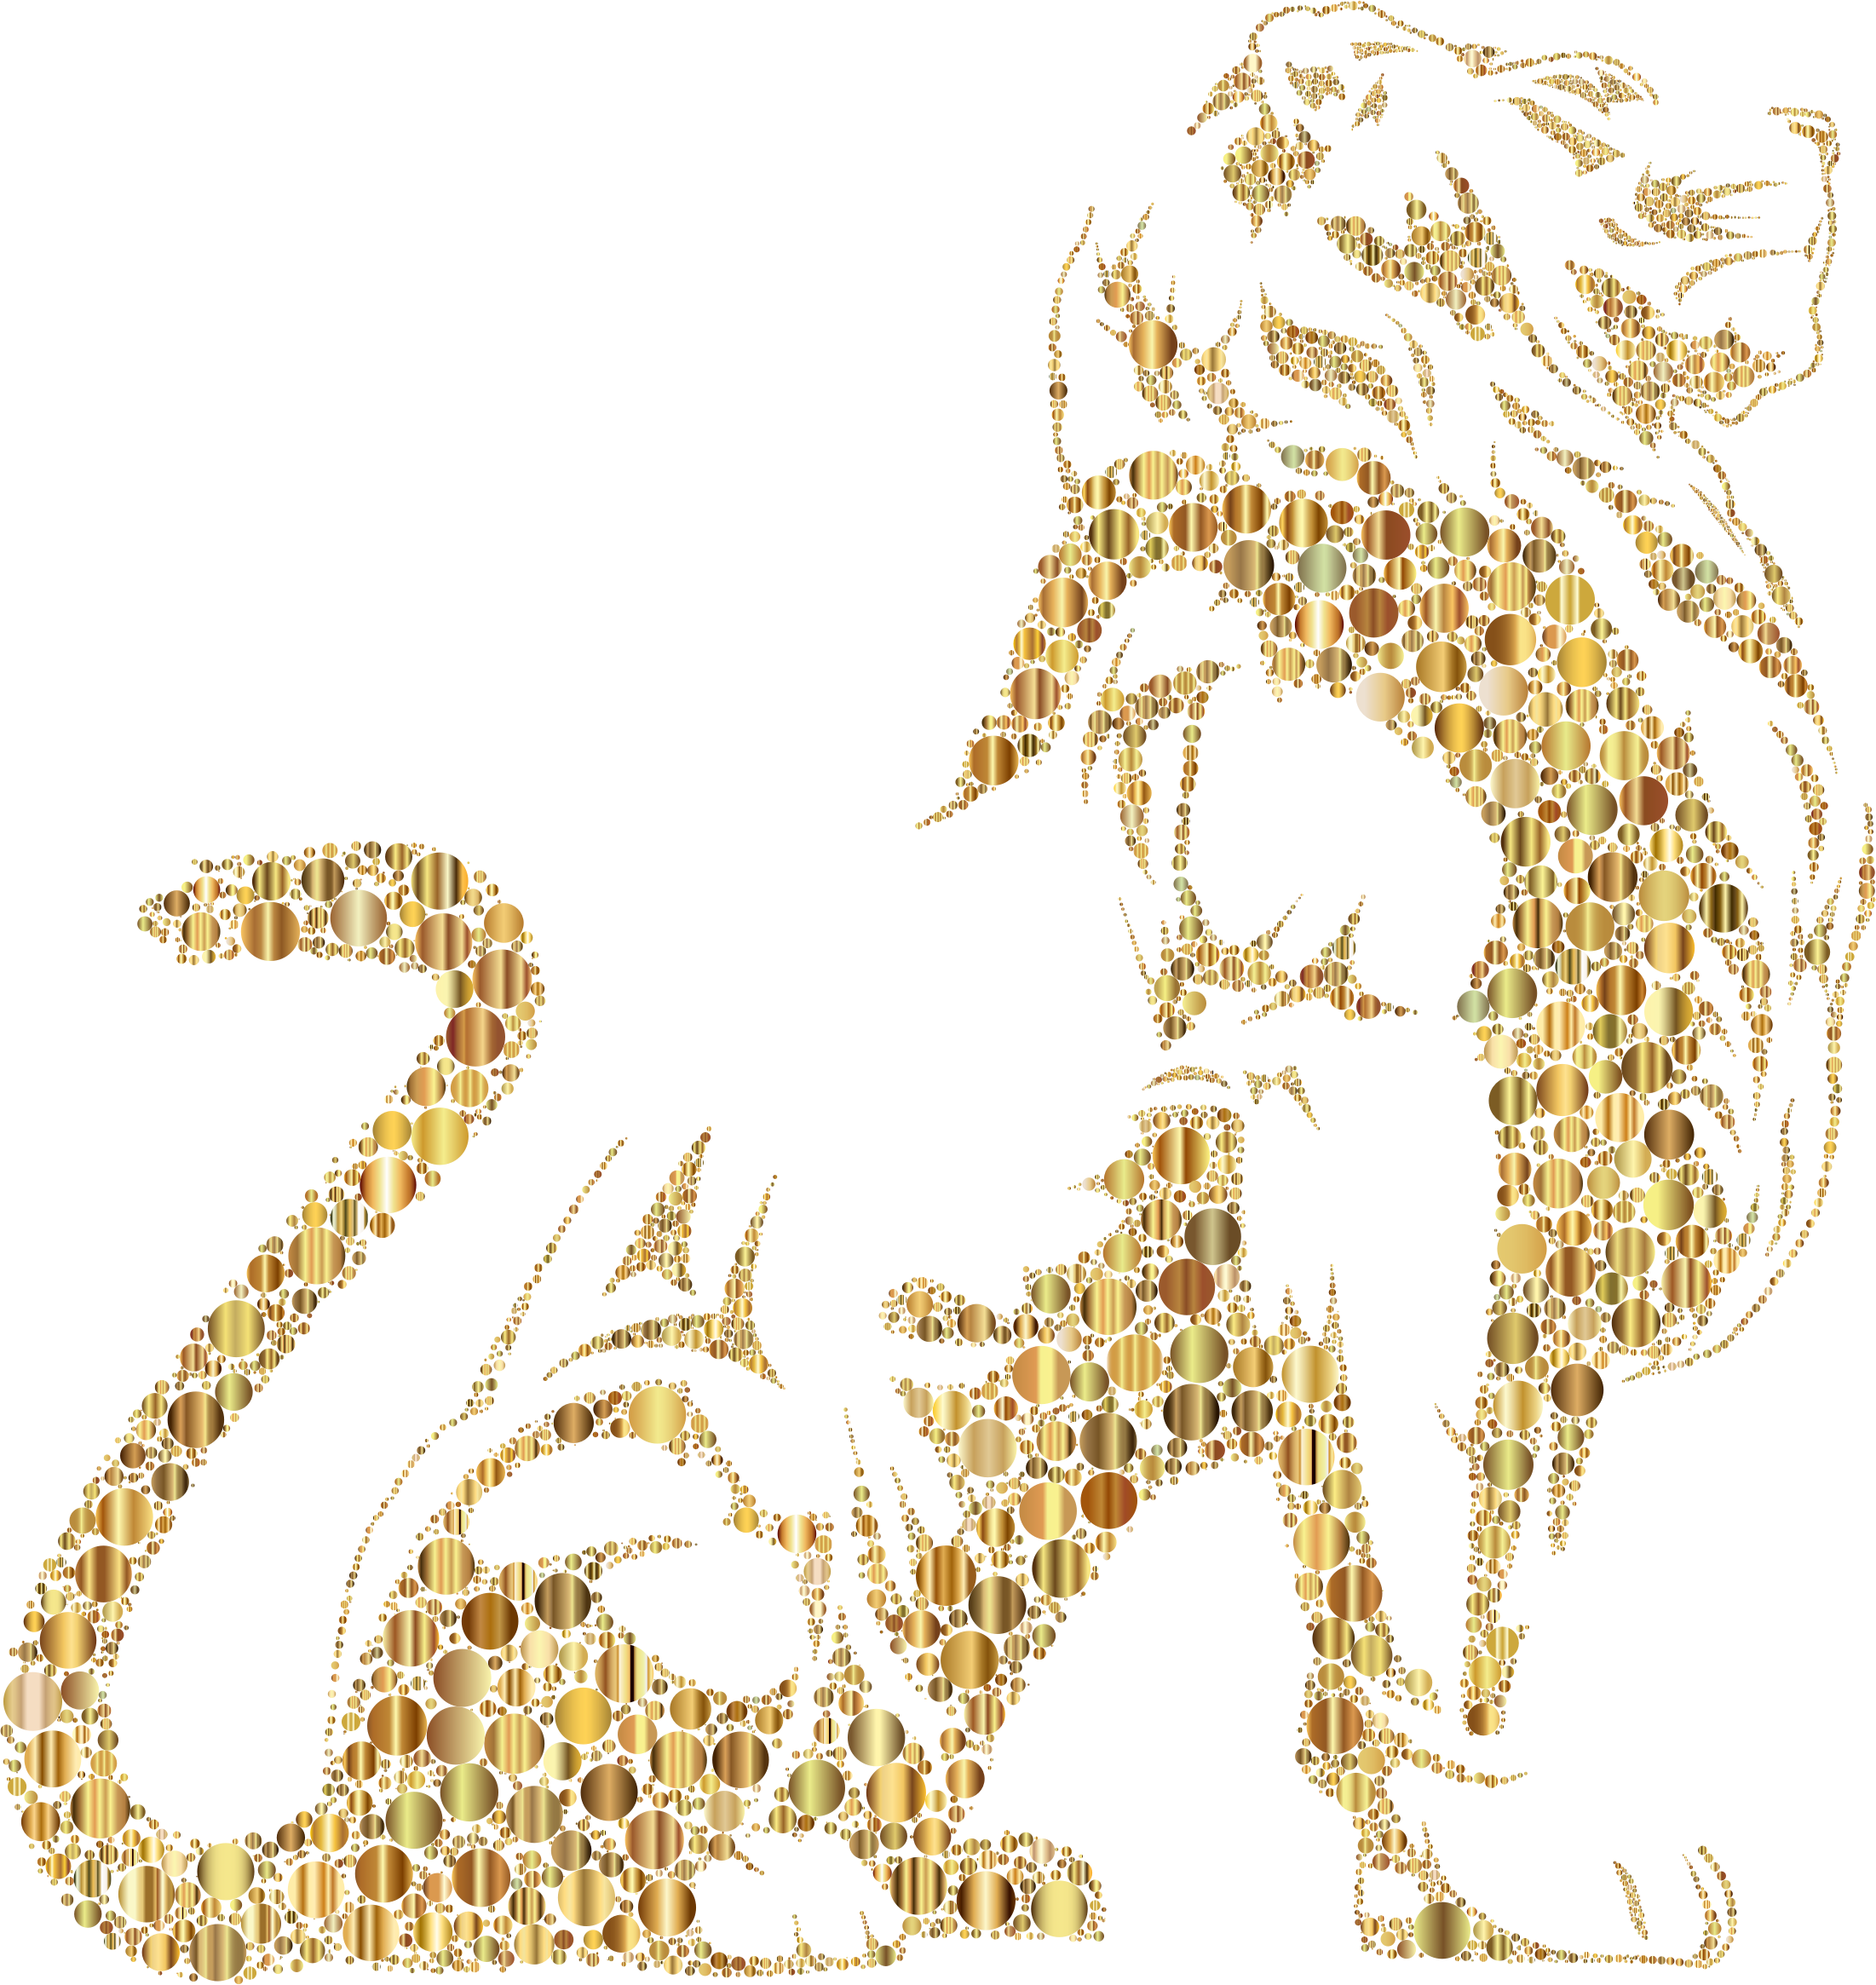 Stylistic Lion Silhouette Circles Gold No BG by GDJ